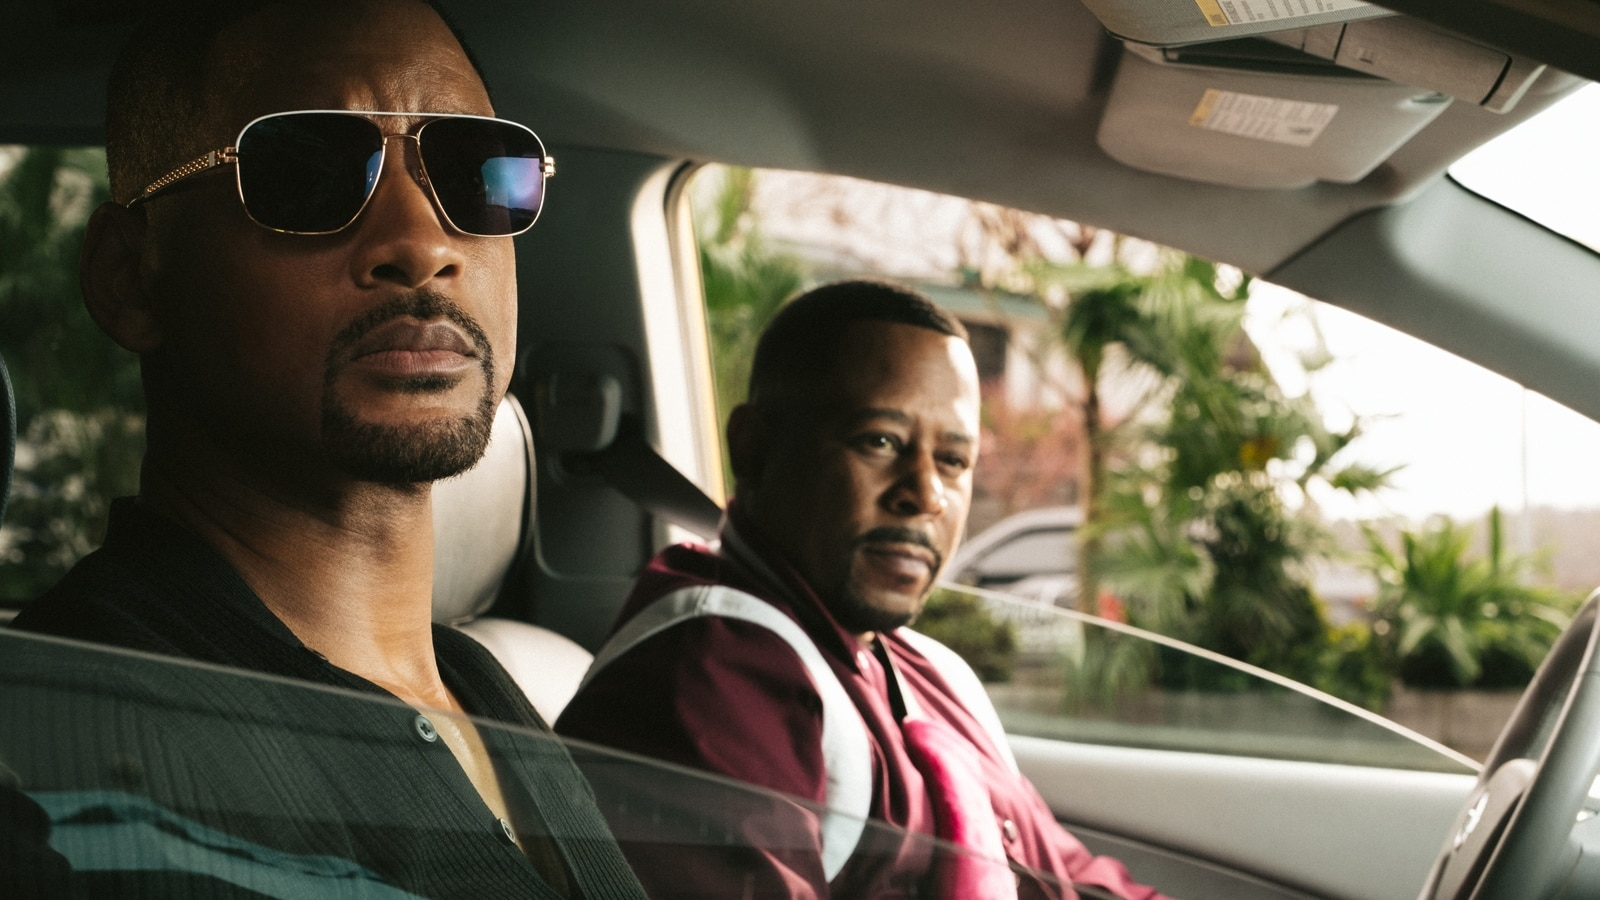 Bad Boys For Life Car. The Bad Boys Mike Lowrey and Marcus Burnett are back together for one last ride in the highly anticipated Bad Boys for Life. Read my full Bad Boys 4 Life 4DX Expereince and Movie review on my blog now!